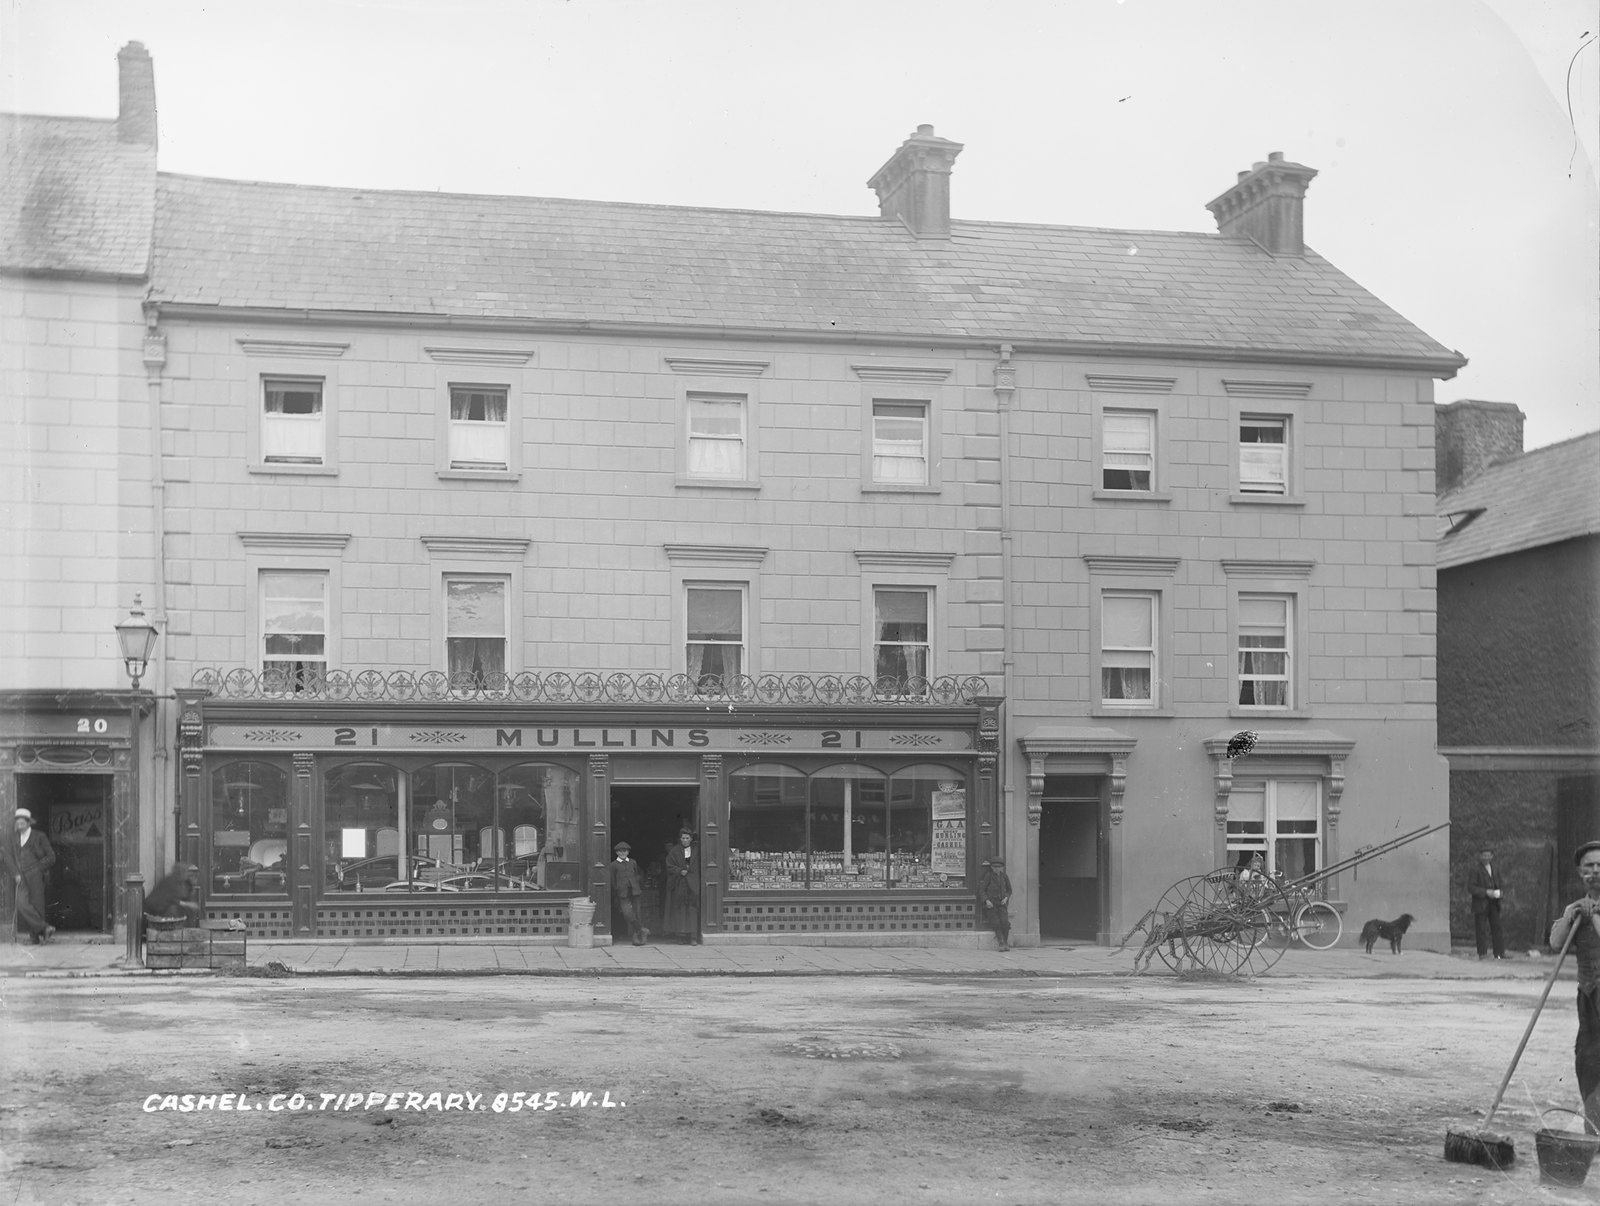 Mullins,Main Street Cashel Co.Tipperary